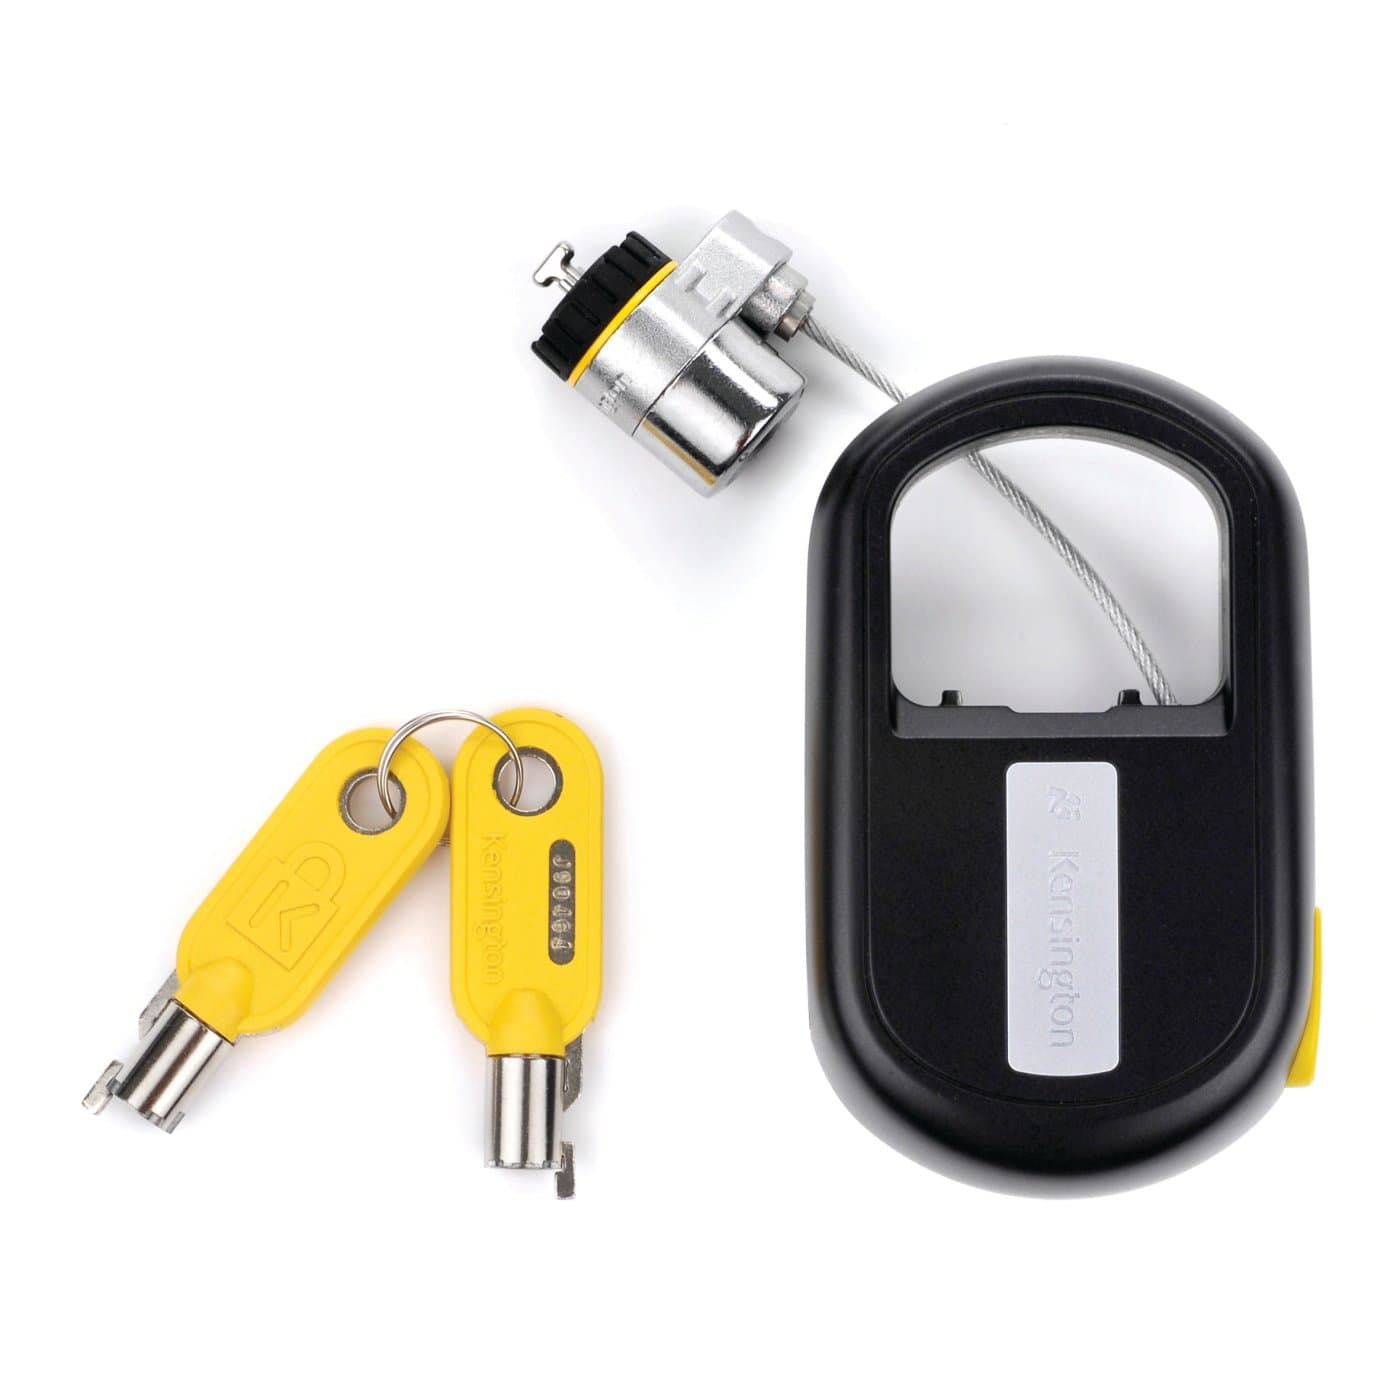 microsaver keyed laptop lock